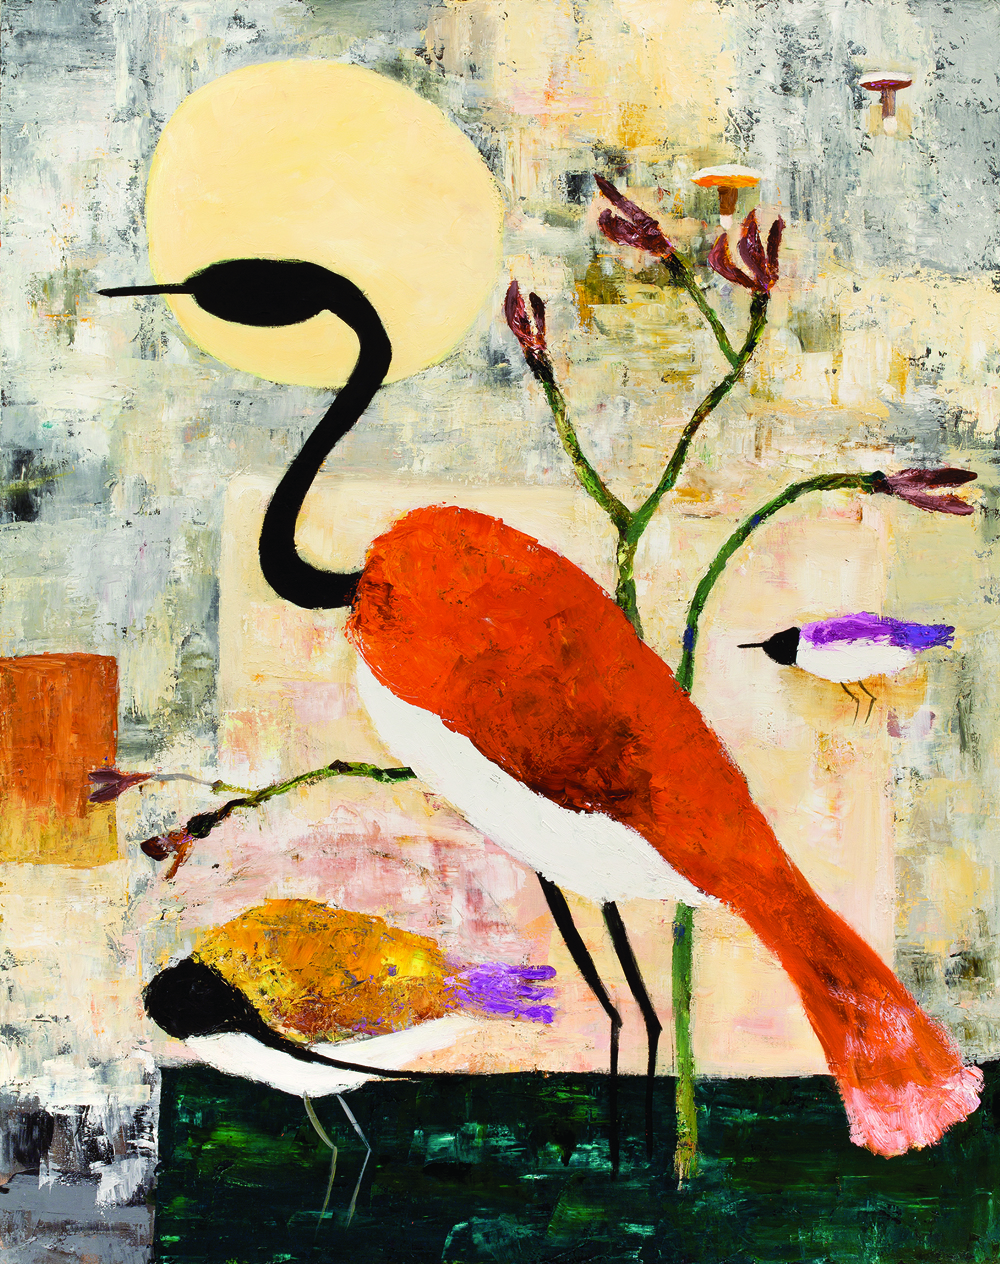 Red Heron and Moon, oil and canvas, 2010